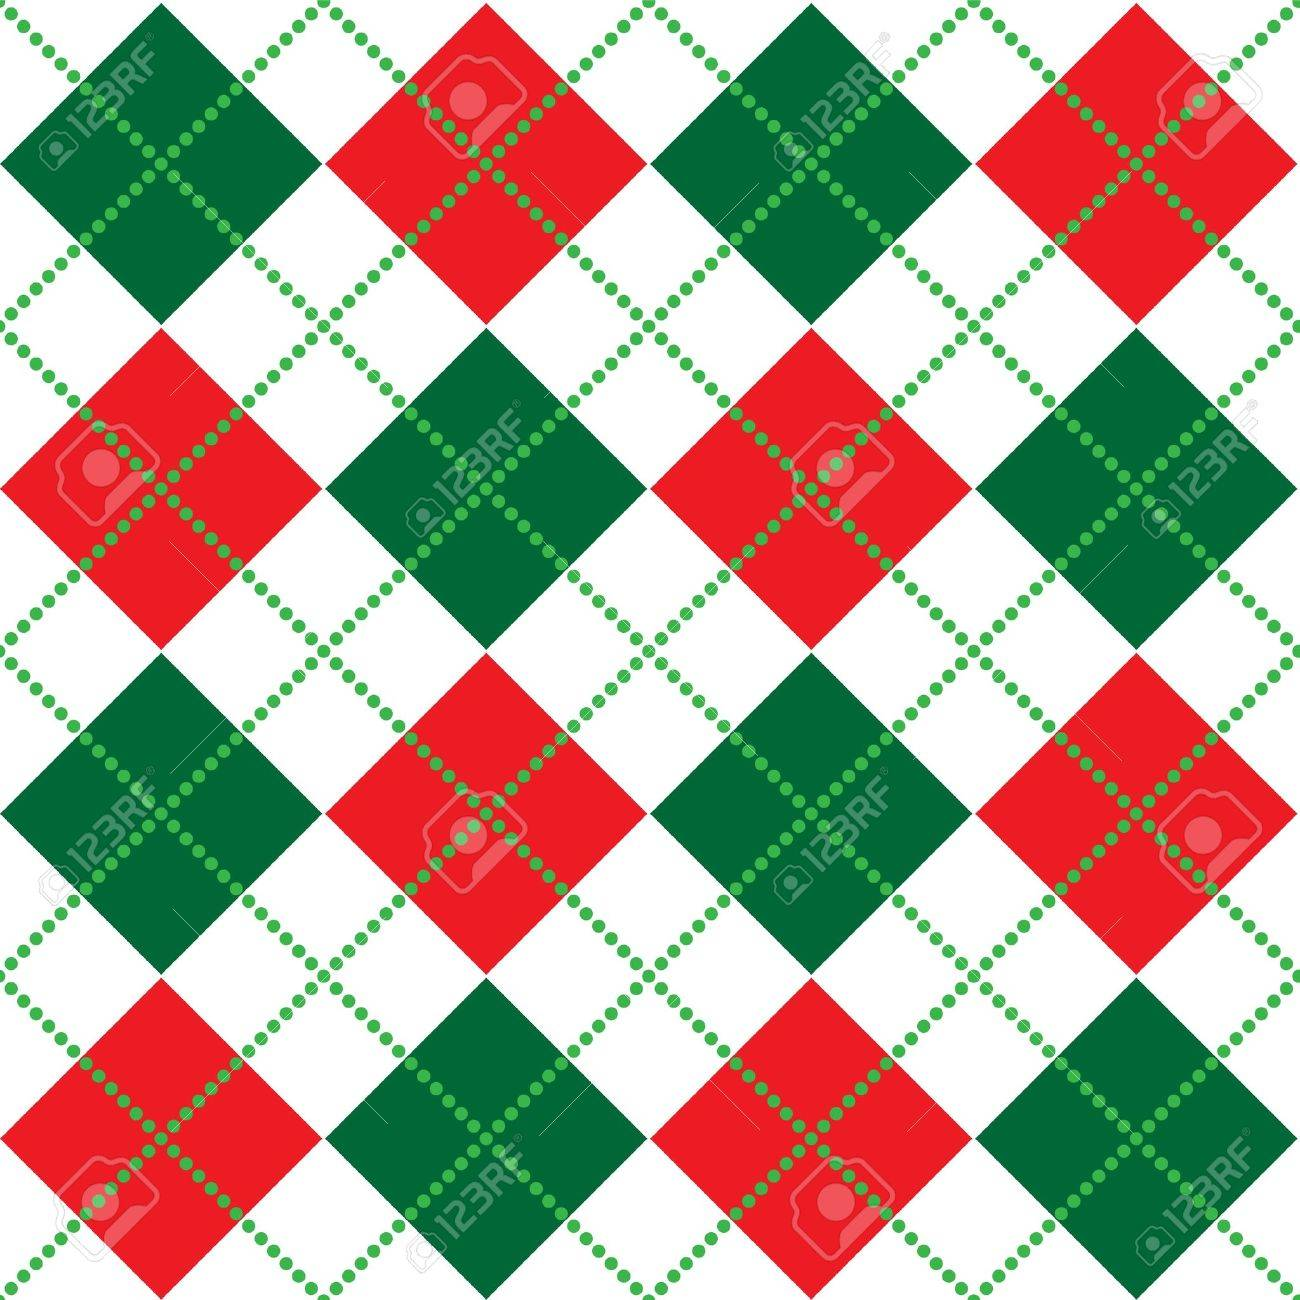 Pics photos merry christmas argyle twitter backgrounds - Background Illustration Of Red White And Green Argyle Pattern Stock Illustration 3324676